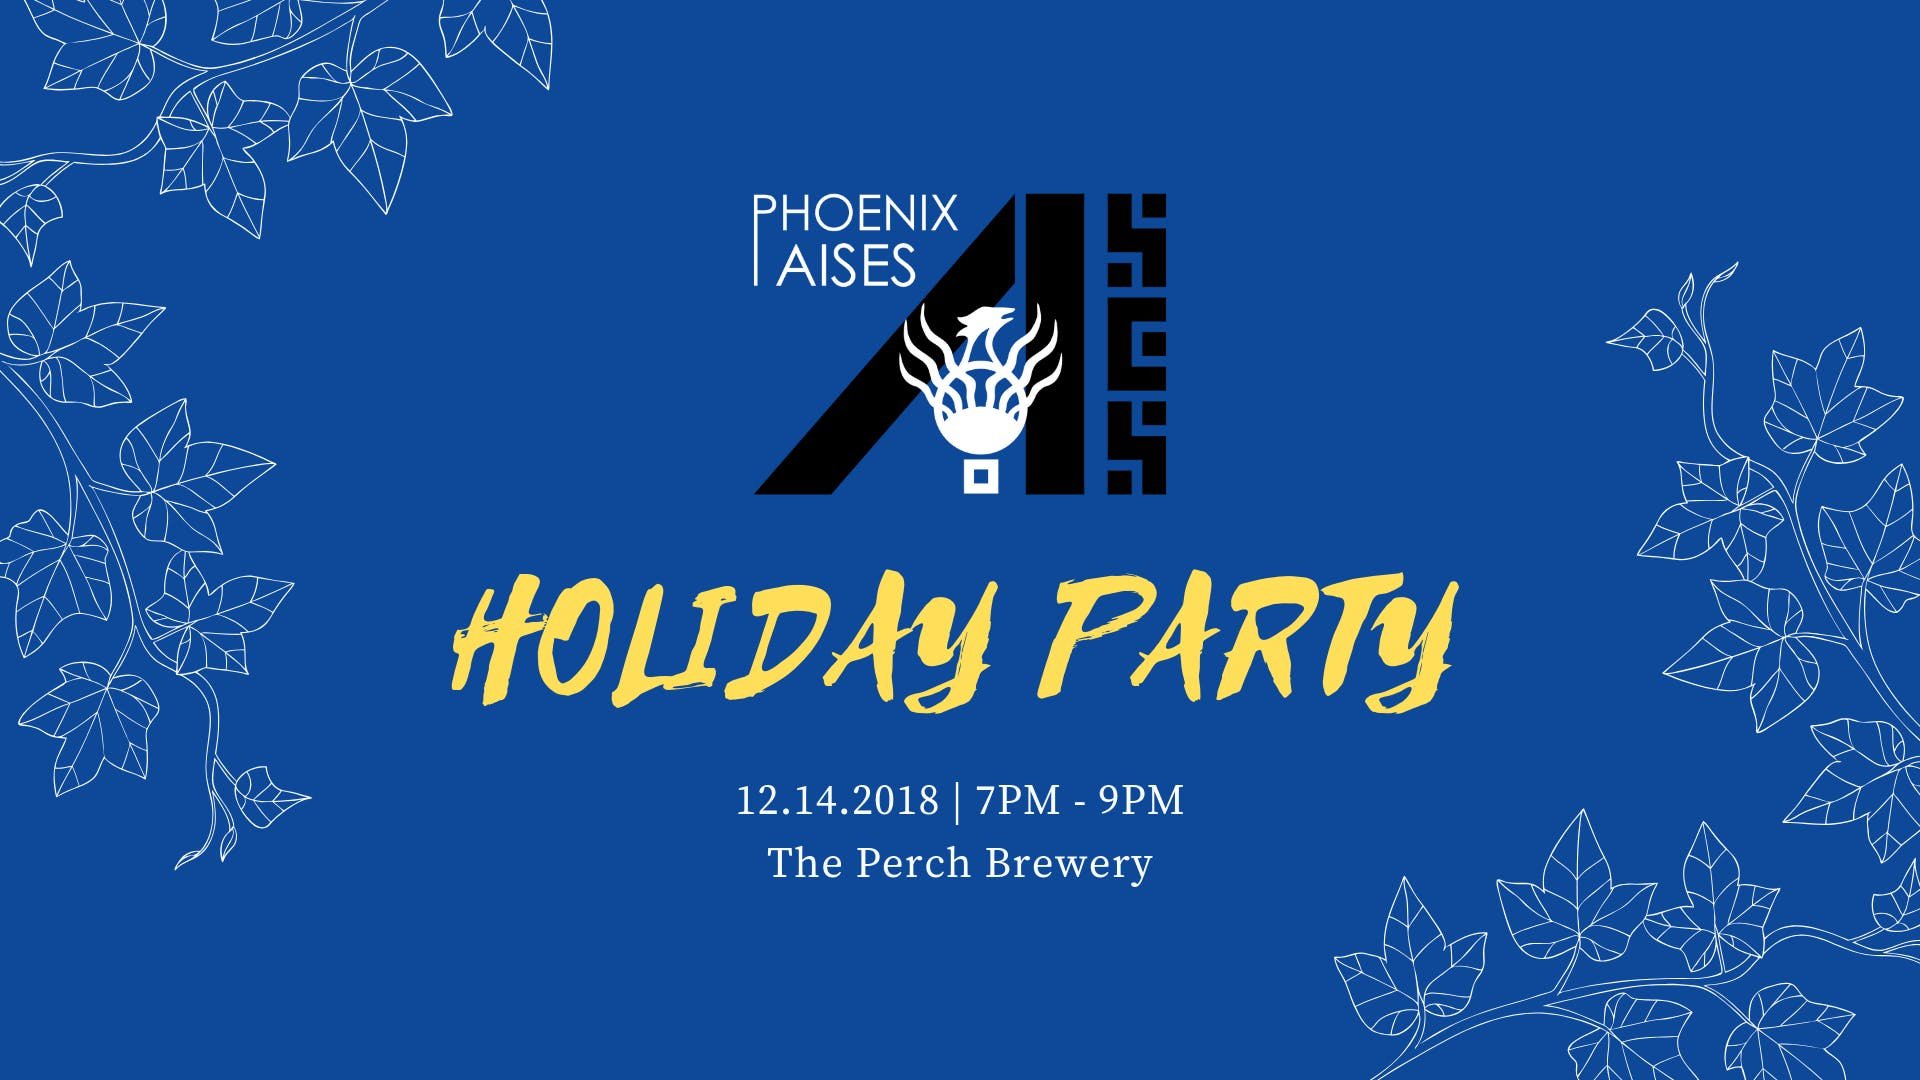 2018 PHX AISES Holiday Party